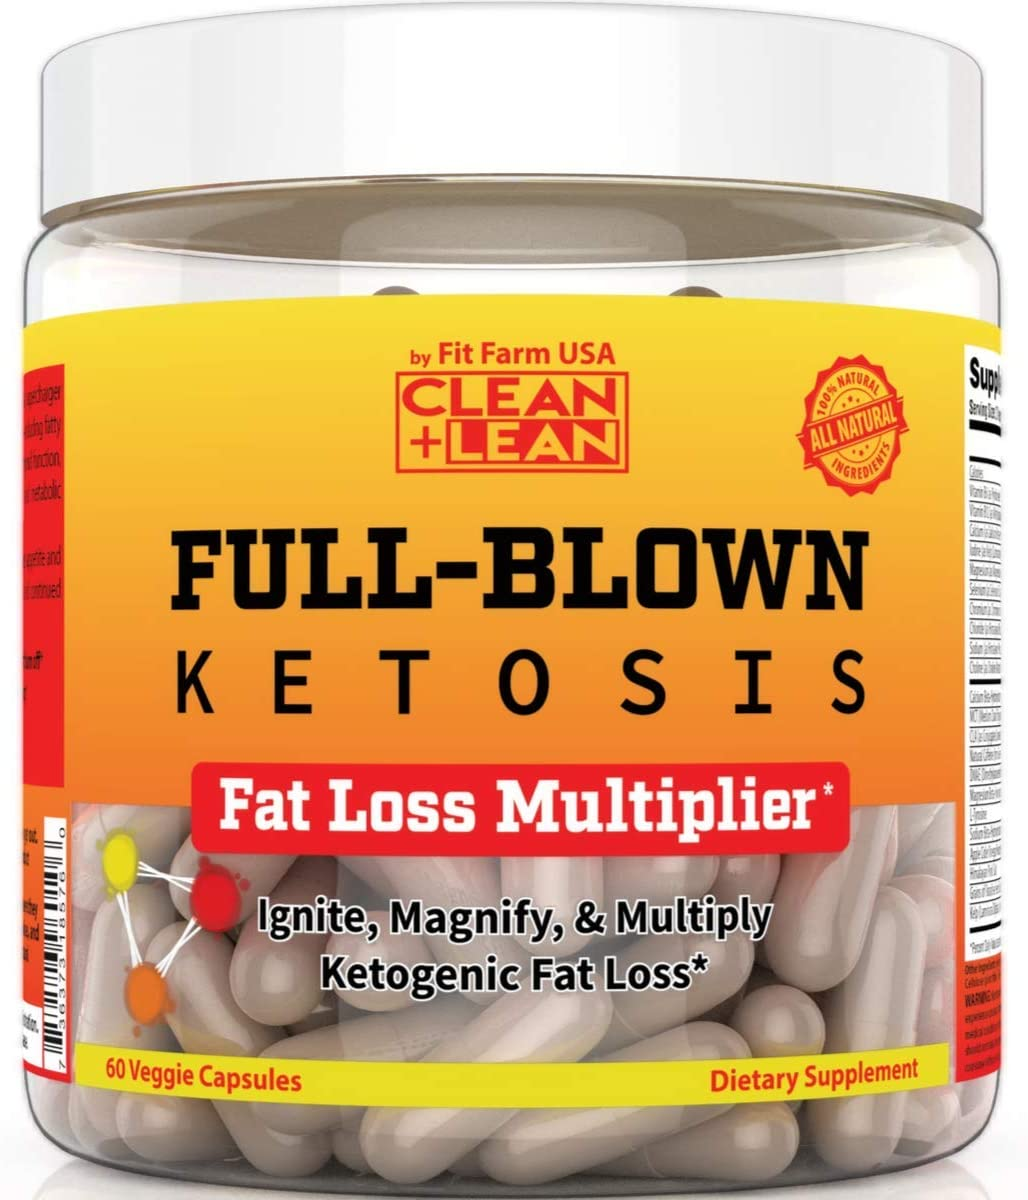 Clean Lean Full-Blown KETOSIS First Ever Ketogenic Fat Loss Multiplier BHB Ketones MCT Oil CLA Apple Cider Vinegar DMAE Thyroid Boosters Immune Support All-in-on Diet Accelerator